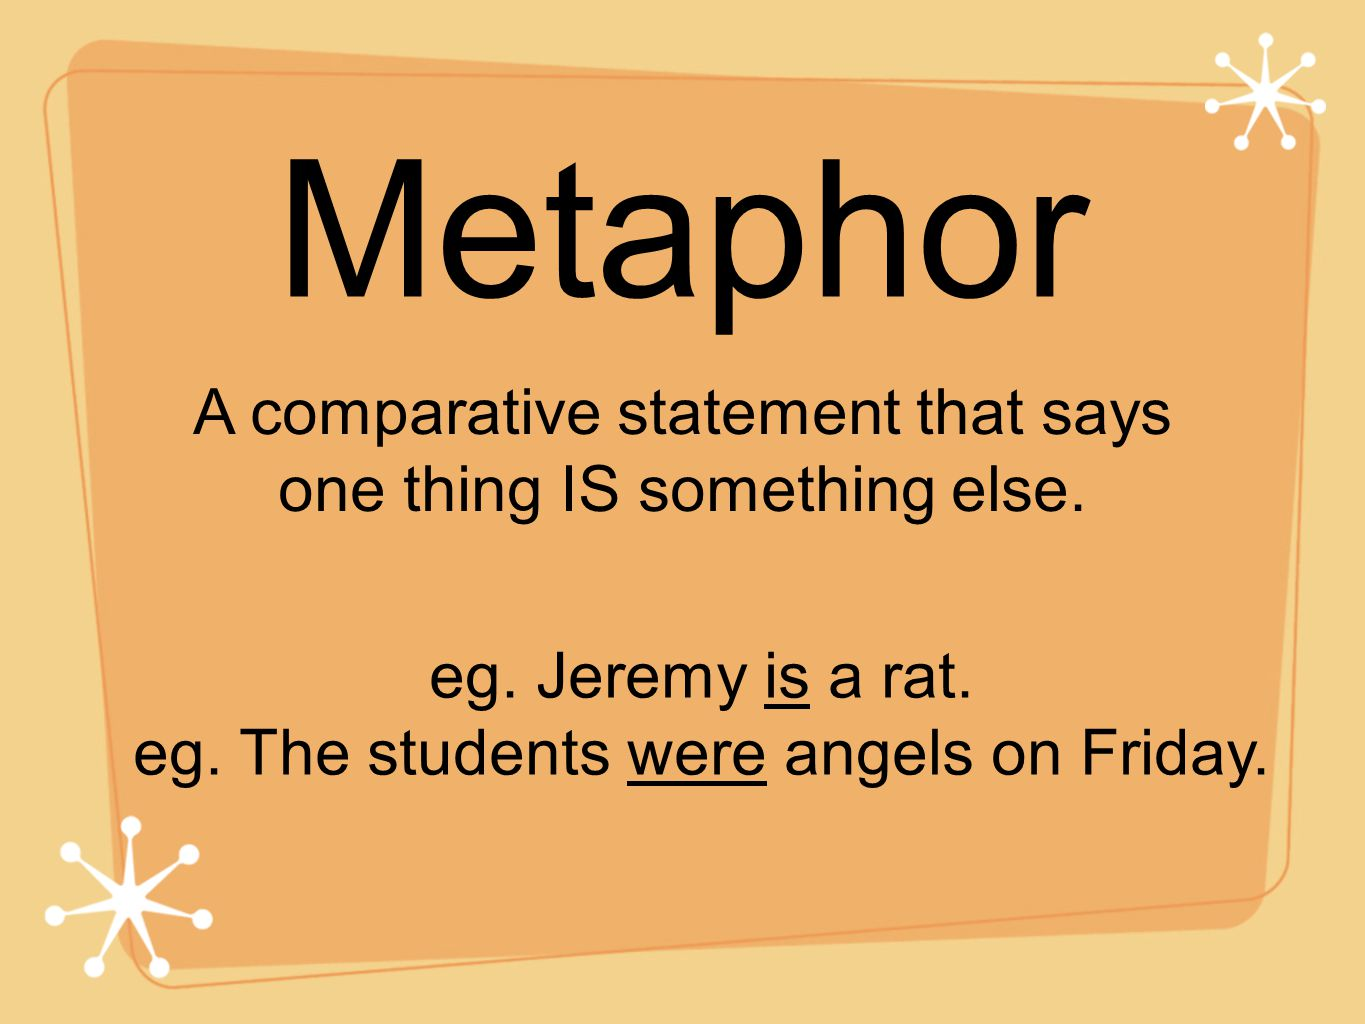 Metaphor A comparative statement that says one thing IS something else. eg. Jeremy is a rat. eg. The students were angels on Friday.